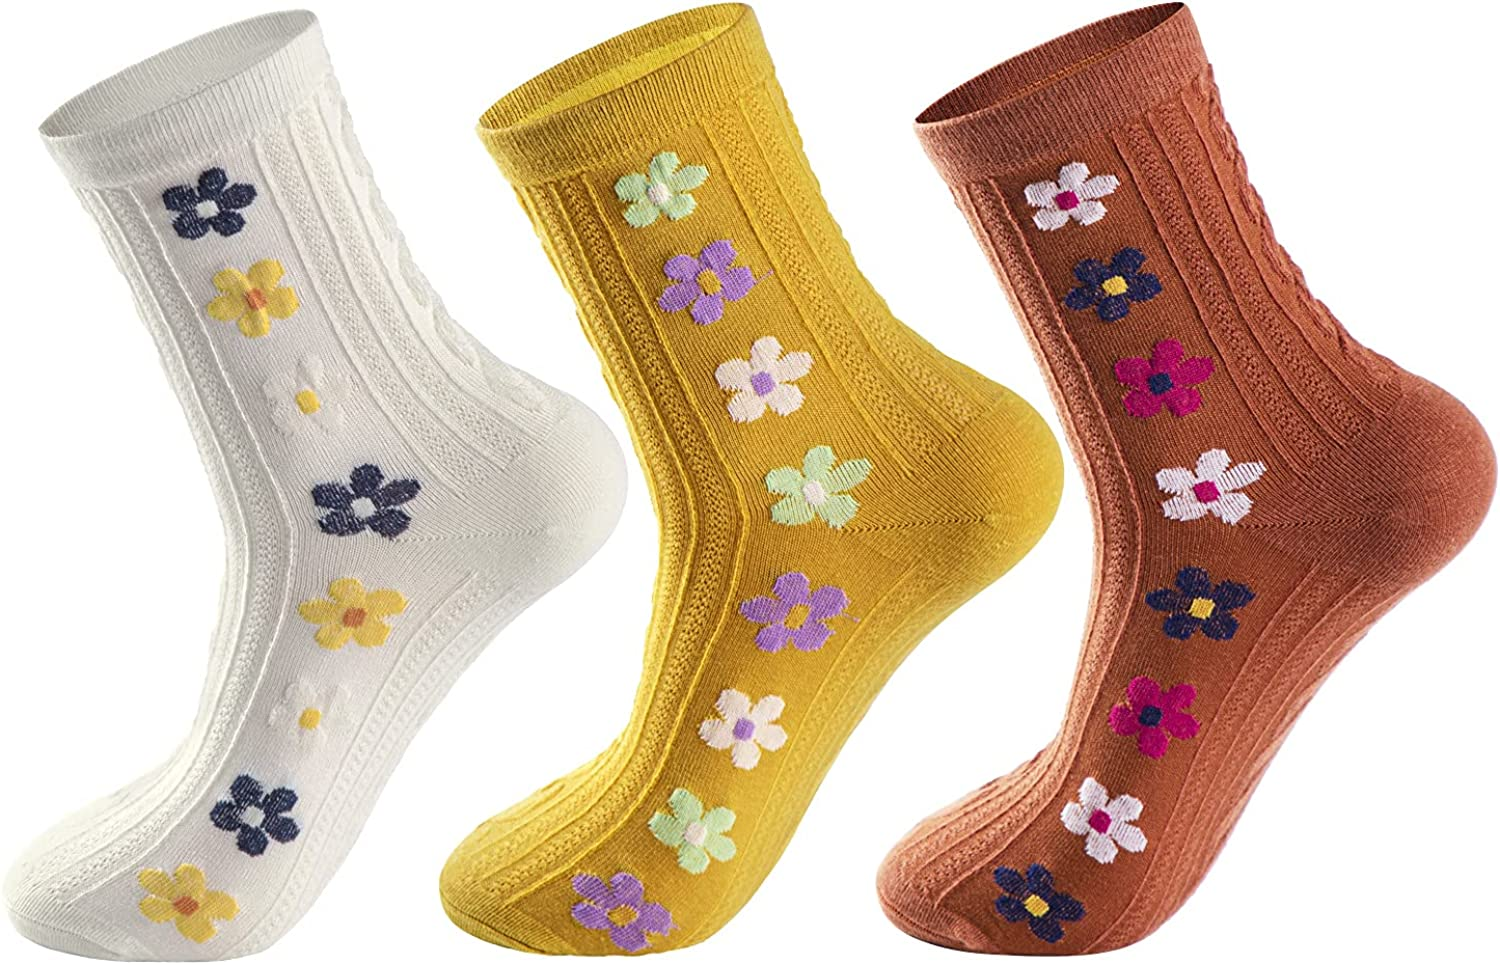 Lacholin Women 3/6 Pairs Cotton Crew Socks Casual Colorful Novelty Flower Patterned Mid-calf Cable Knit Socks for Girls